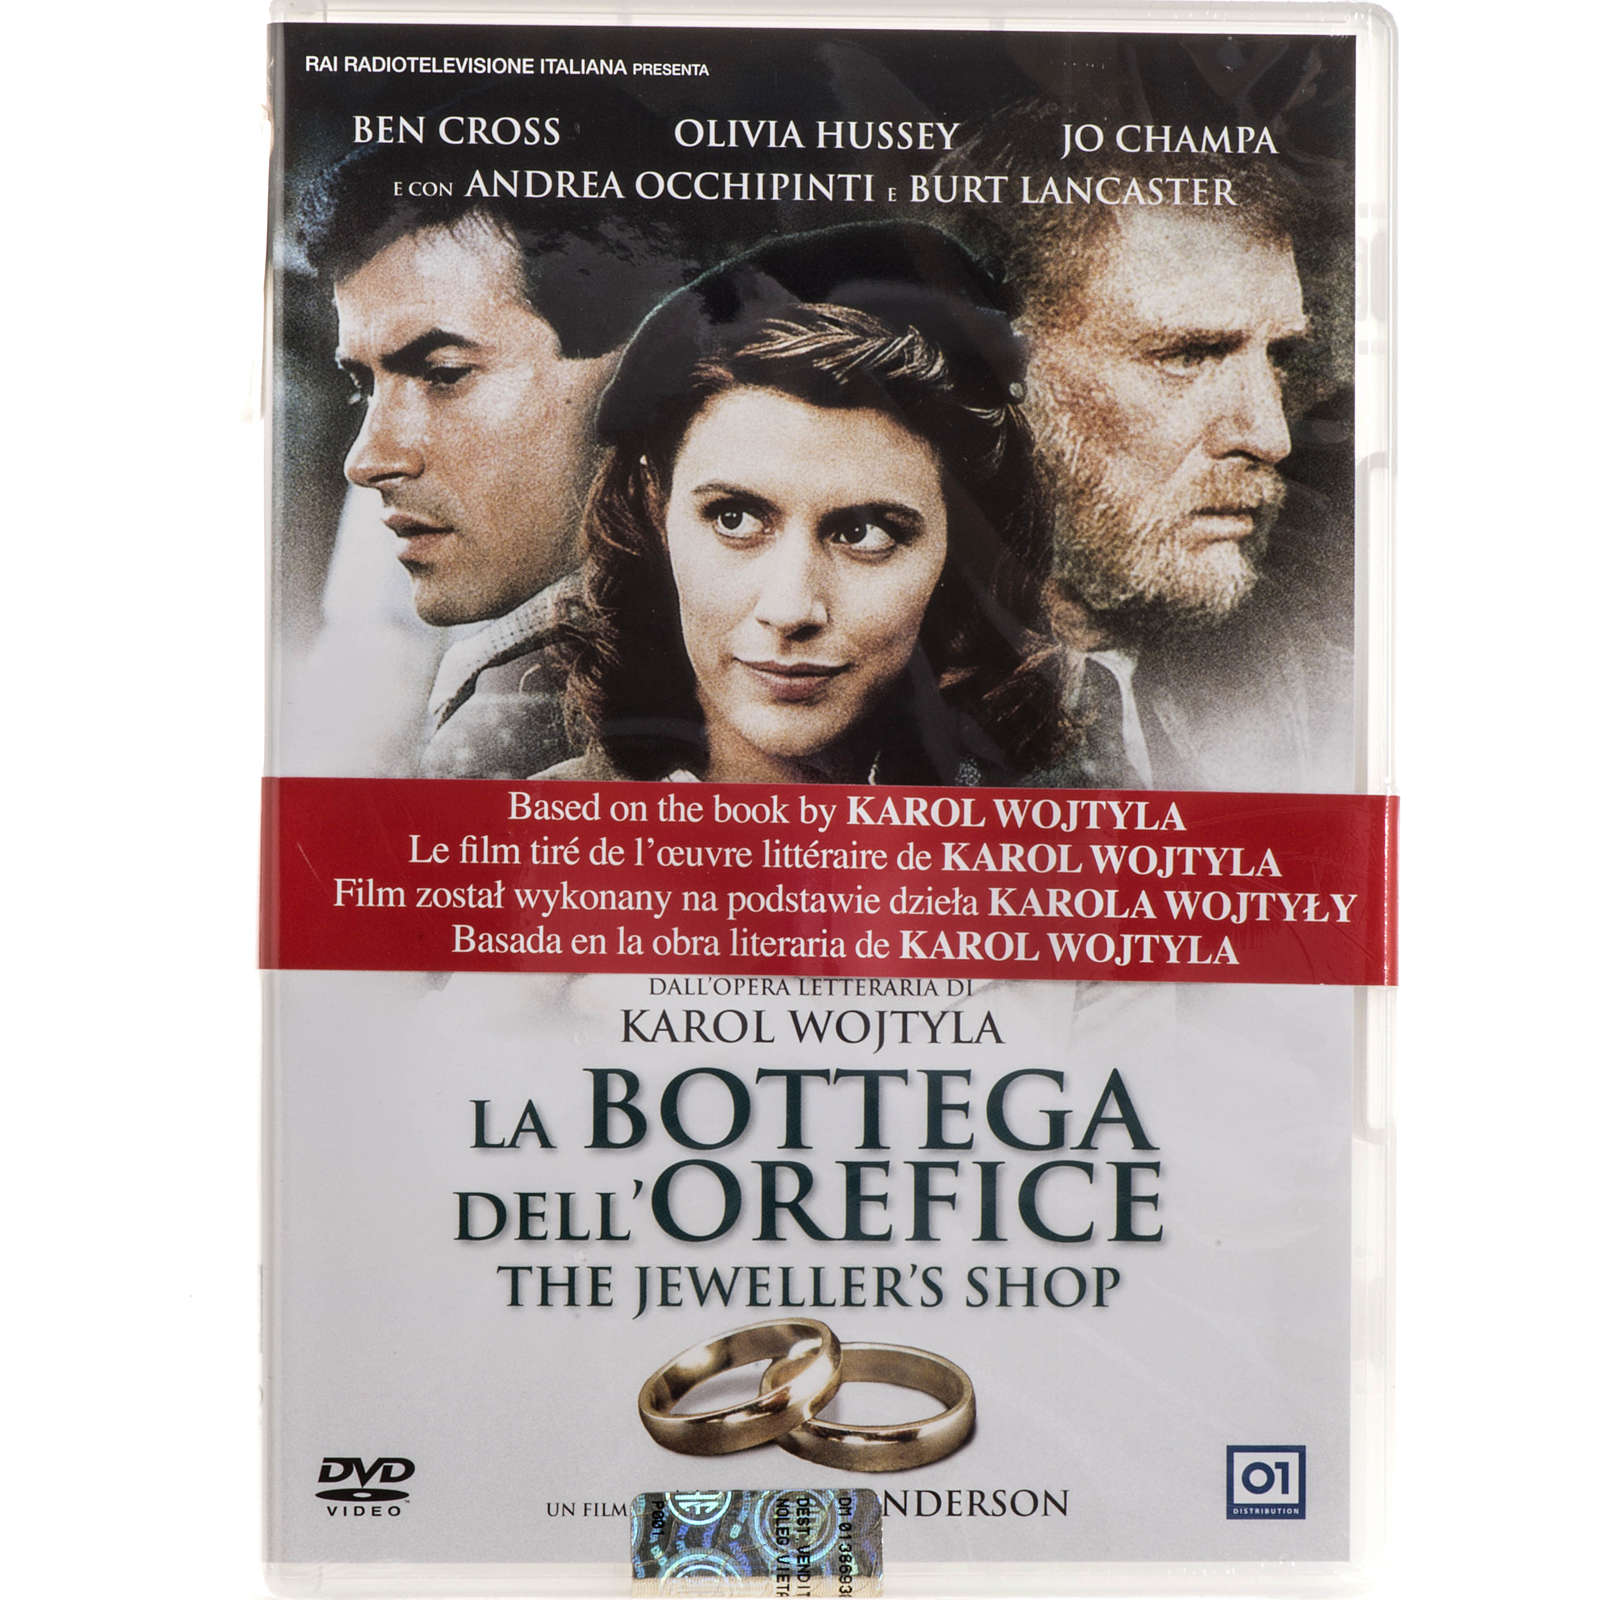 La bottega dell'orefice 3